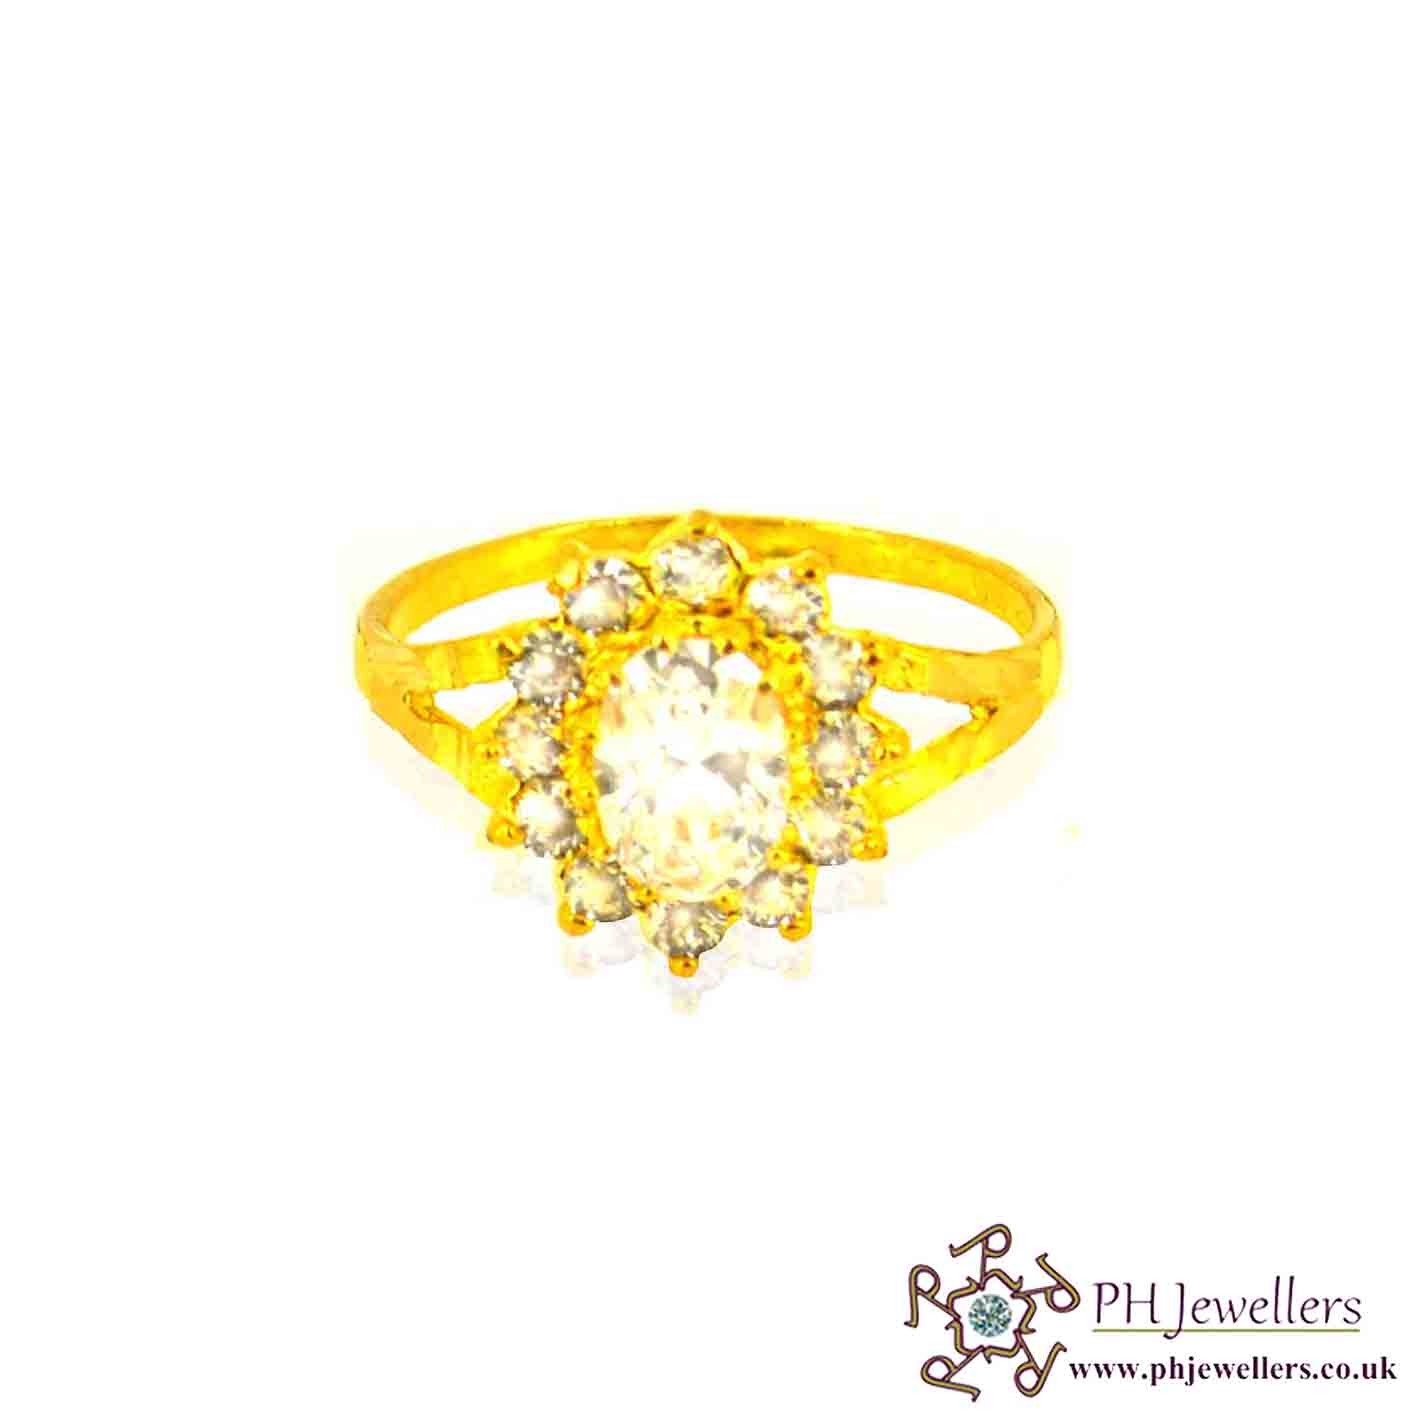 22ct 916 Hallmark Yellow Gold Cluster Oval Size M,M1/2 Ring CZ SR22